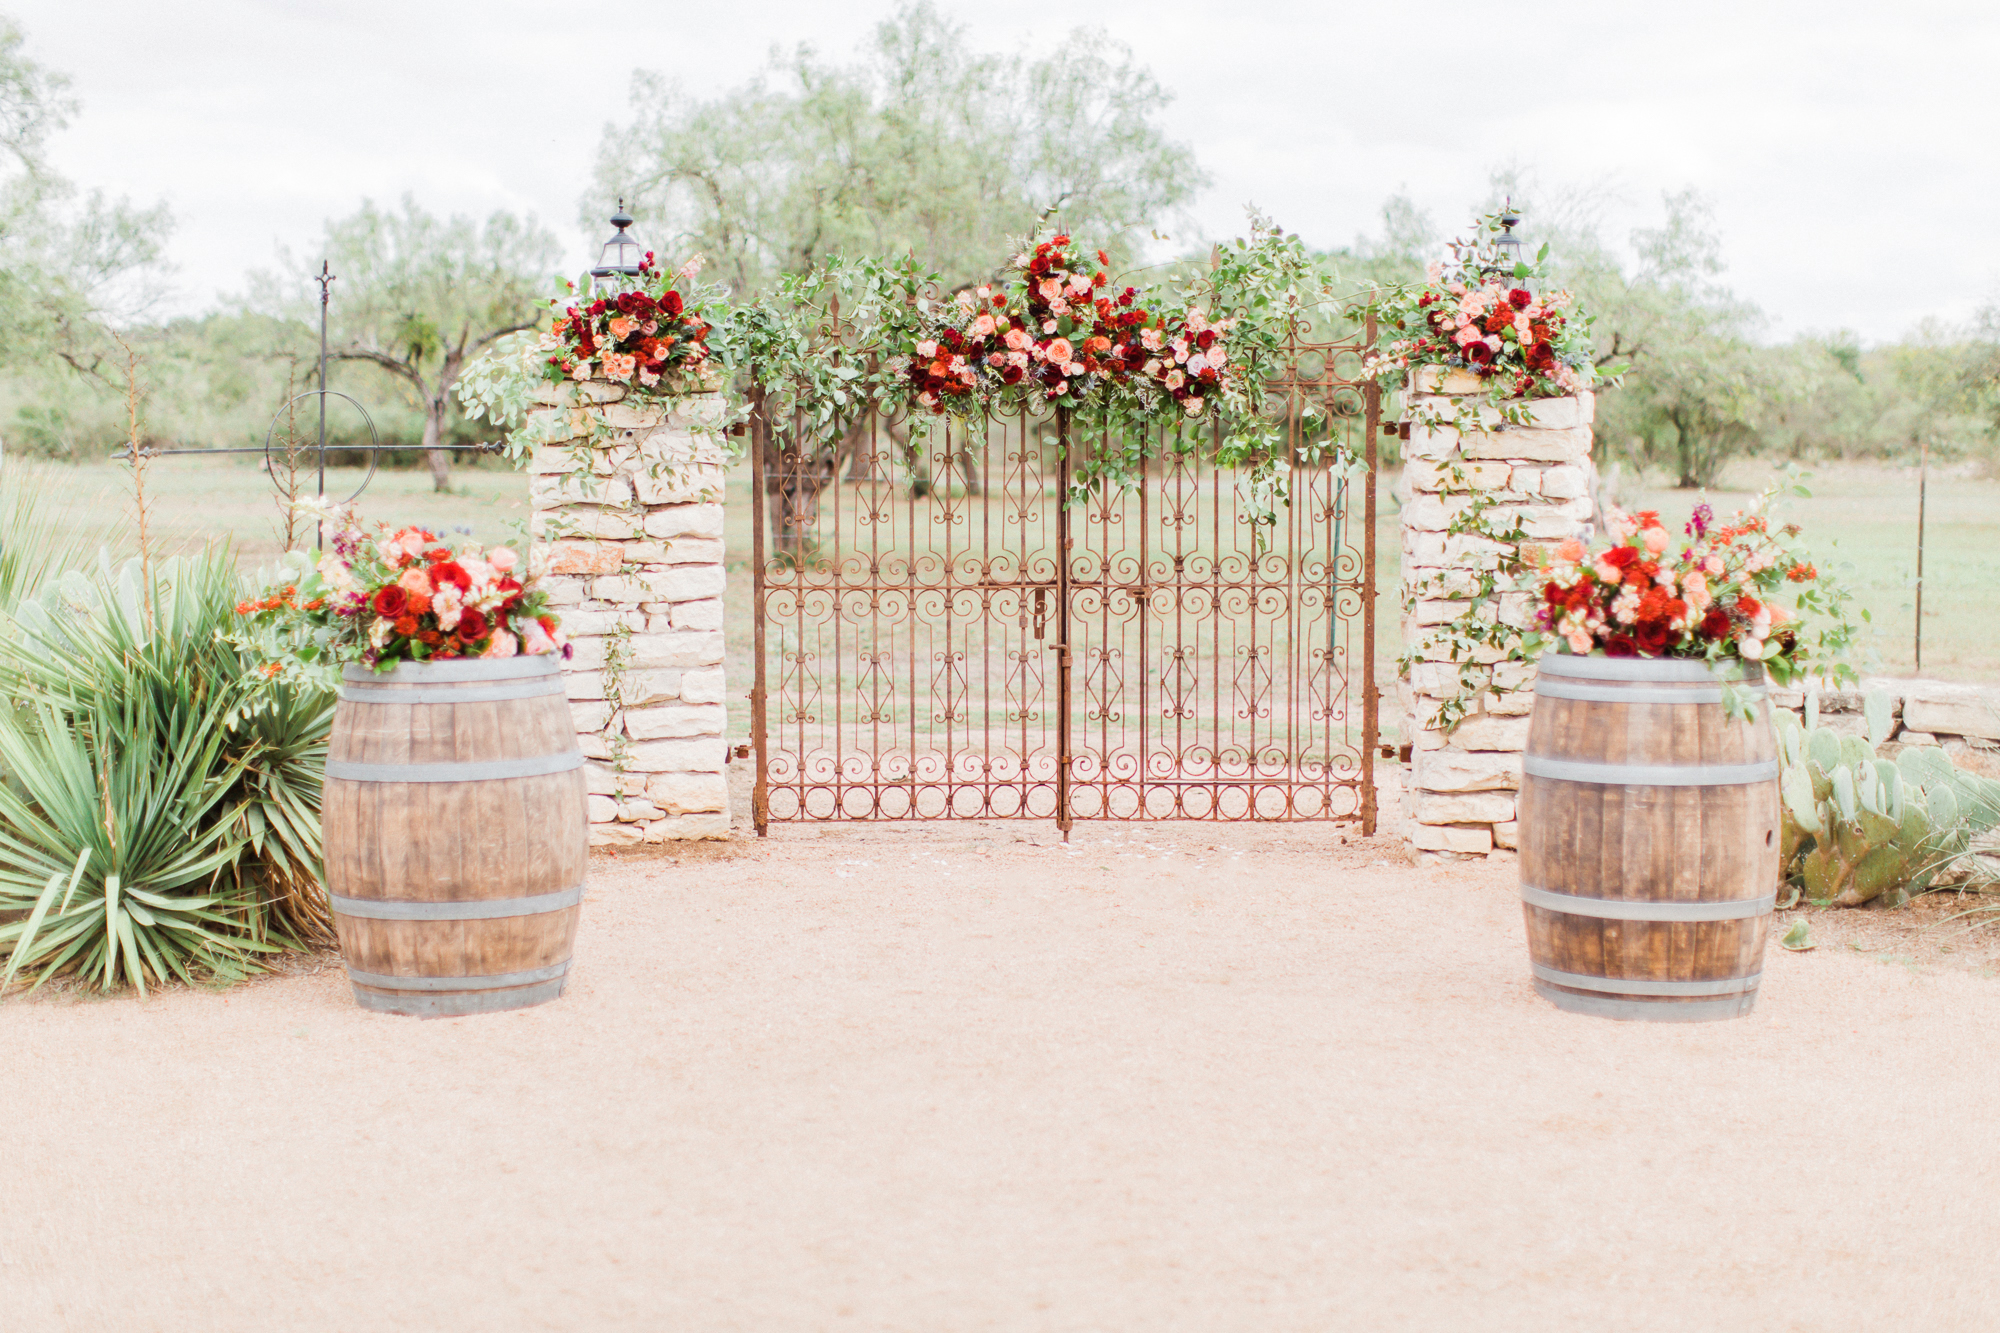 Autumn floral arrangements at Hofmann Ranch by Wedgewood Weddings